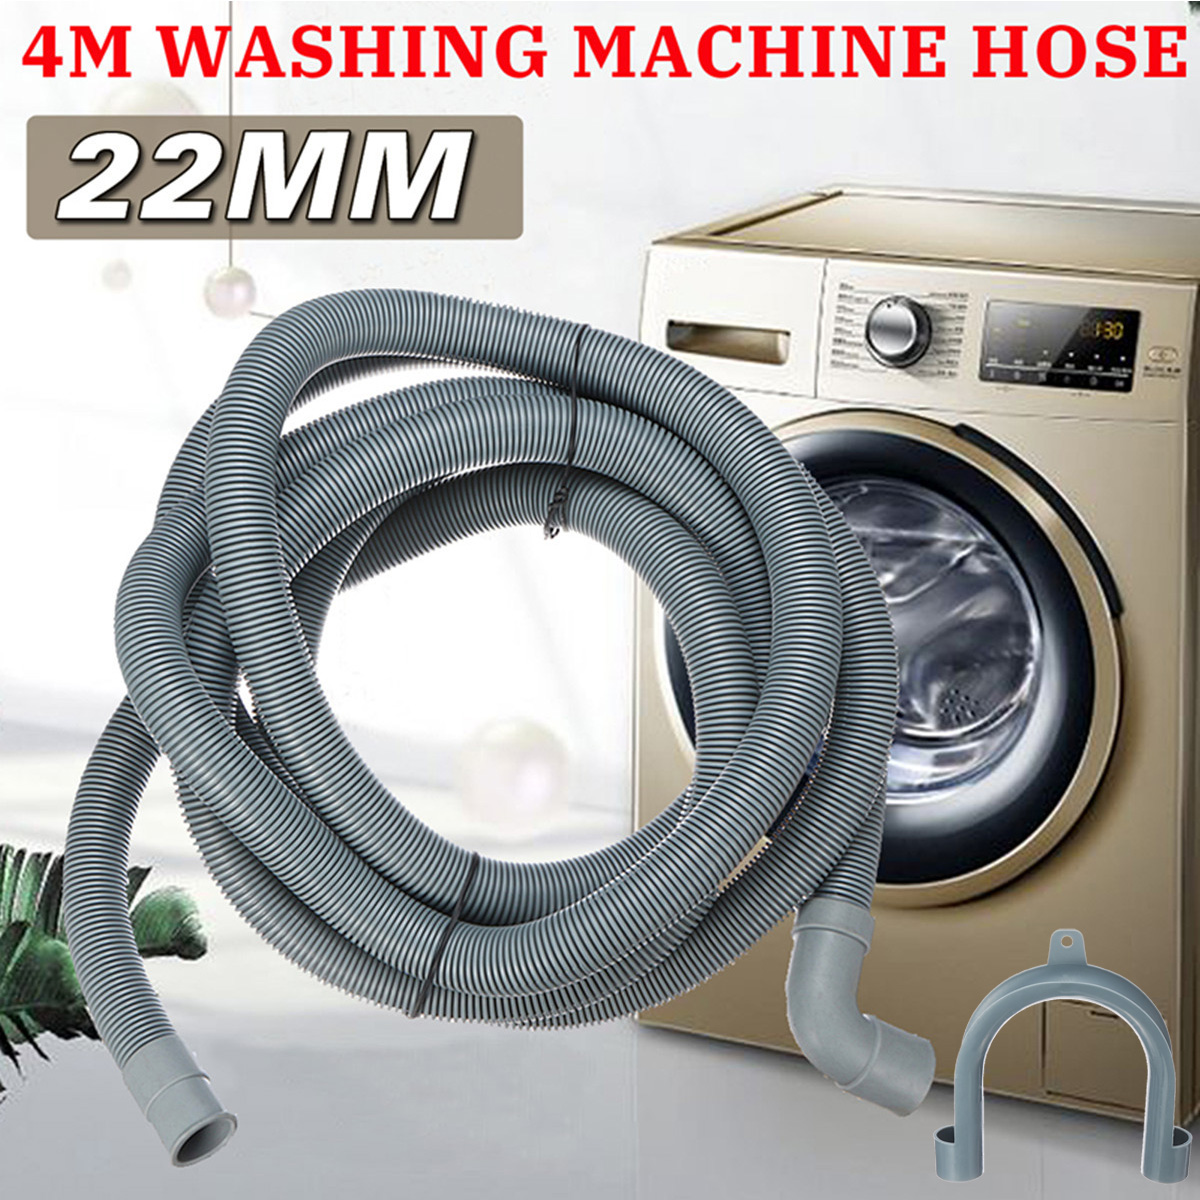 4M Wash Machine Dishwasher Drain Hose Outlet Water Pipe Flexible Extension 22mm With Bracket